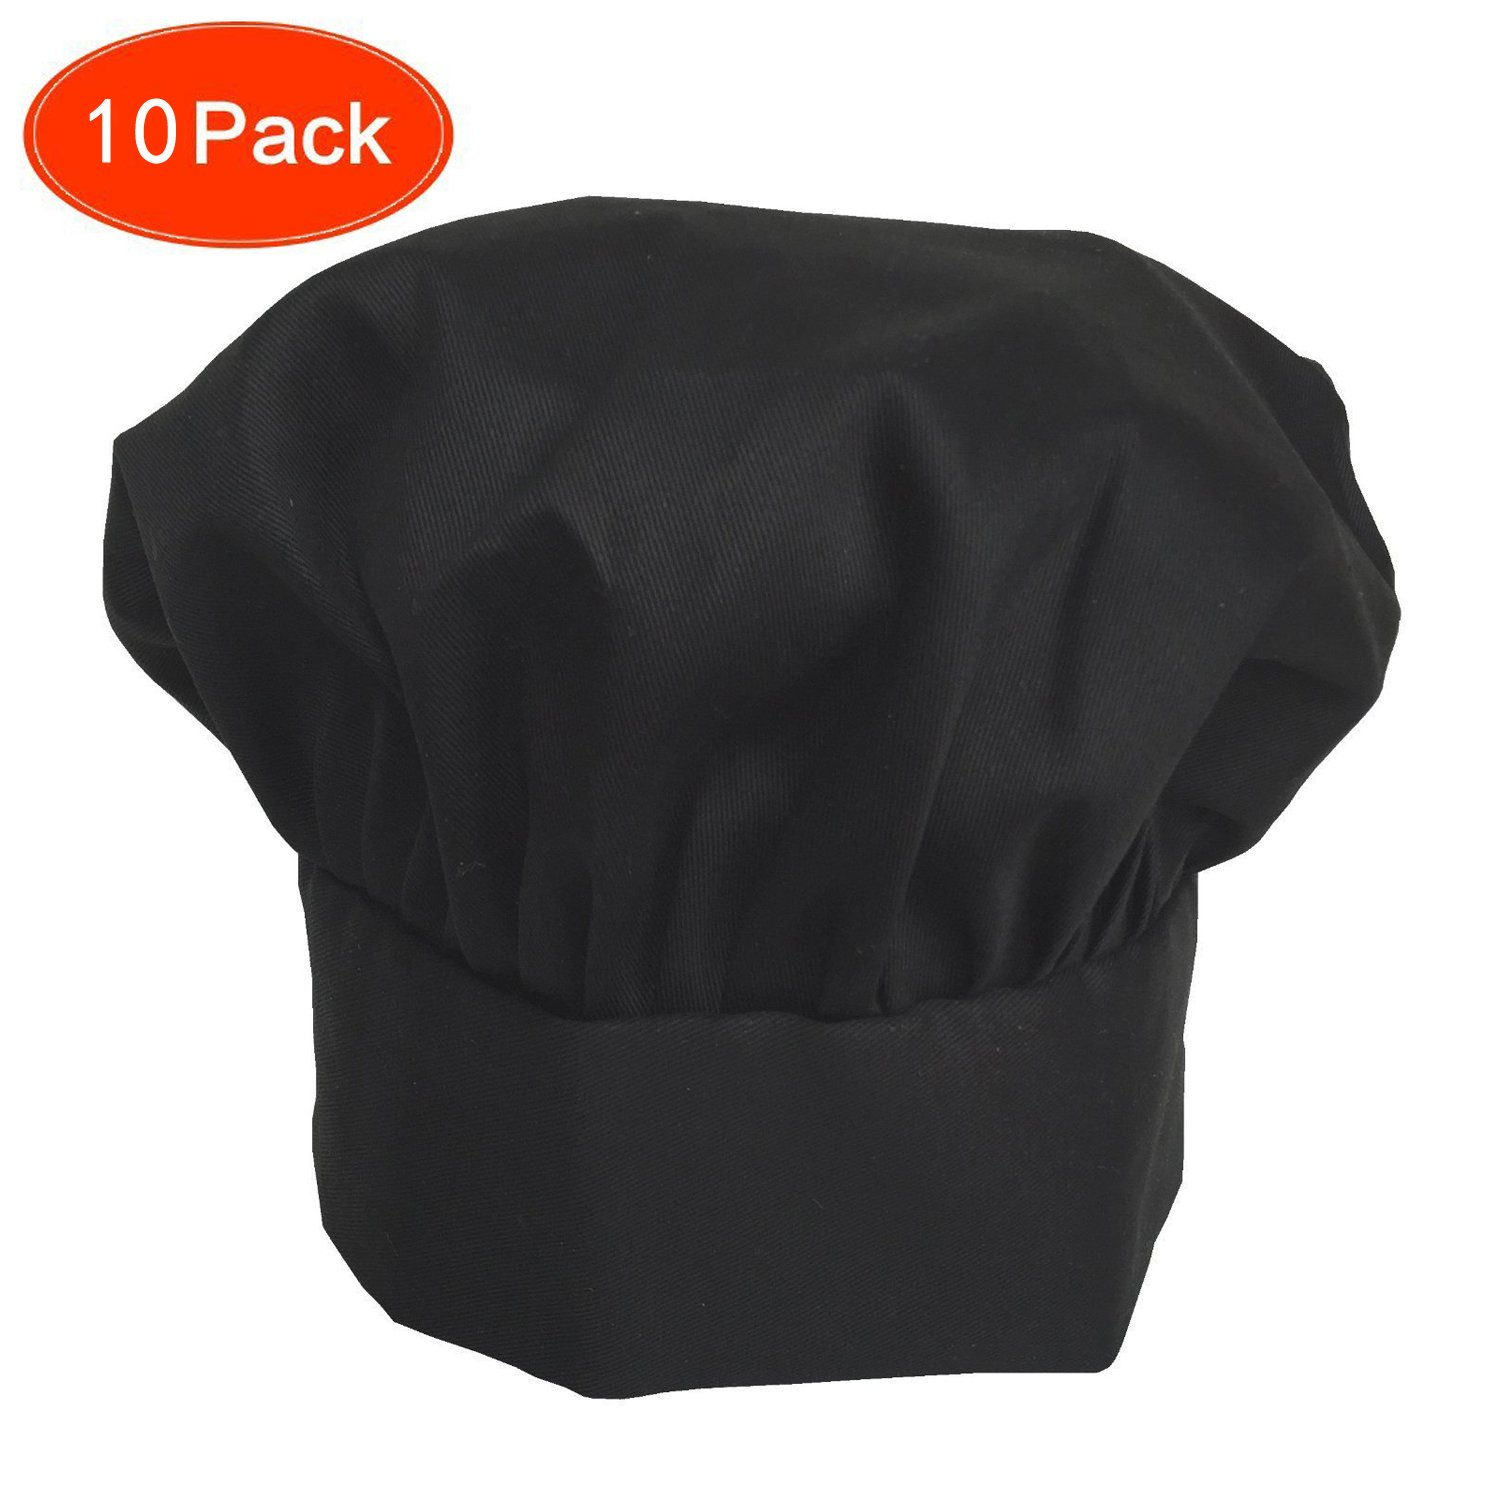 Ufaucet Elastic Band Design 80% Cotton Black Easy Clean Adjustable Velcro Durable Executive Sushi Personalized Pastry Chef Hat, Chef Hats for Adults